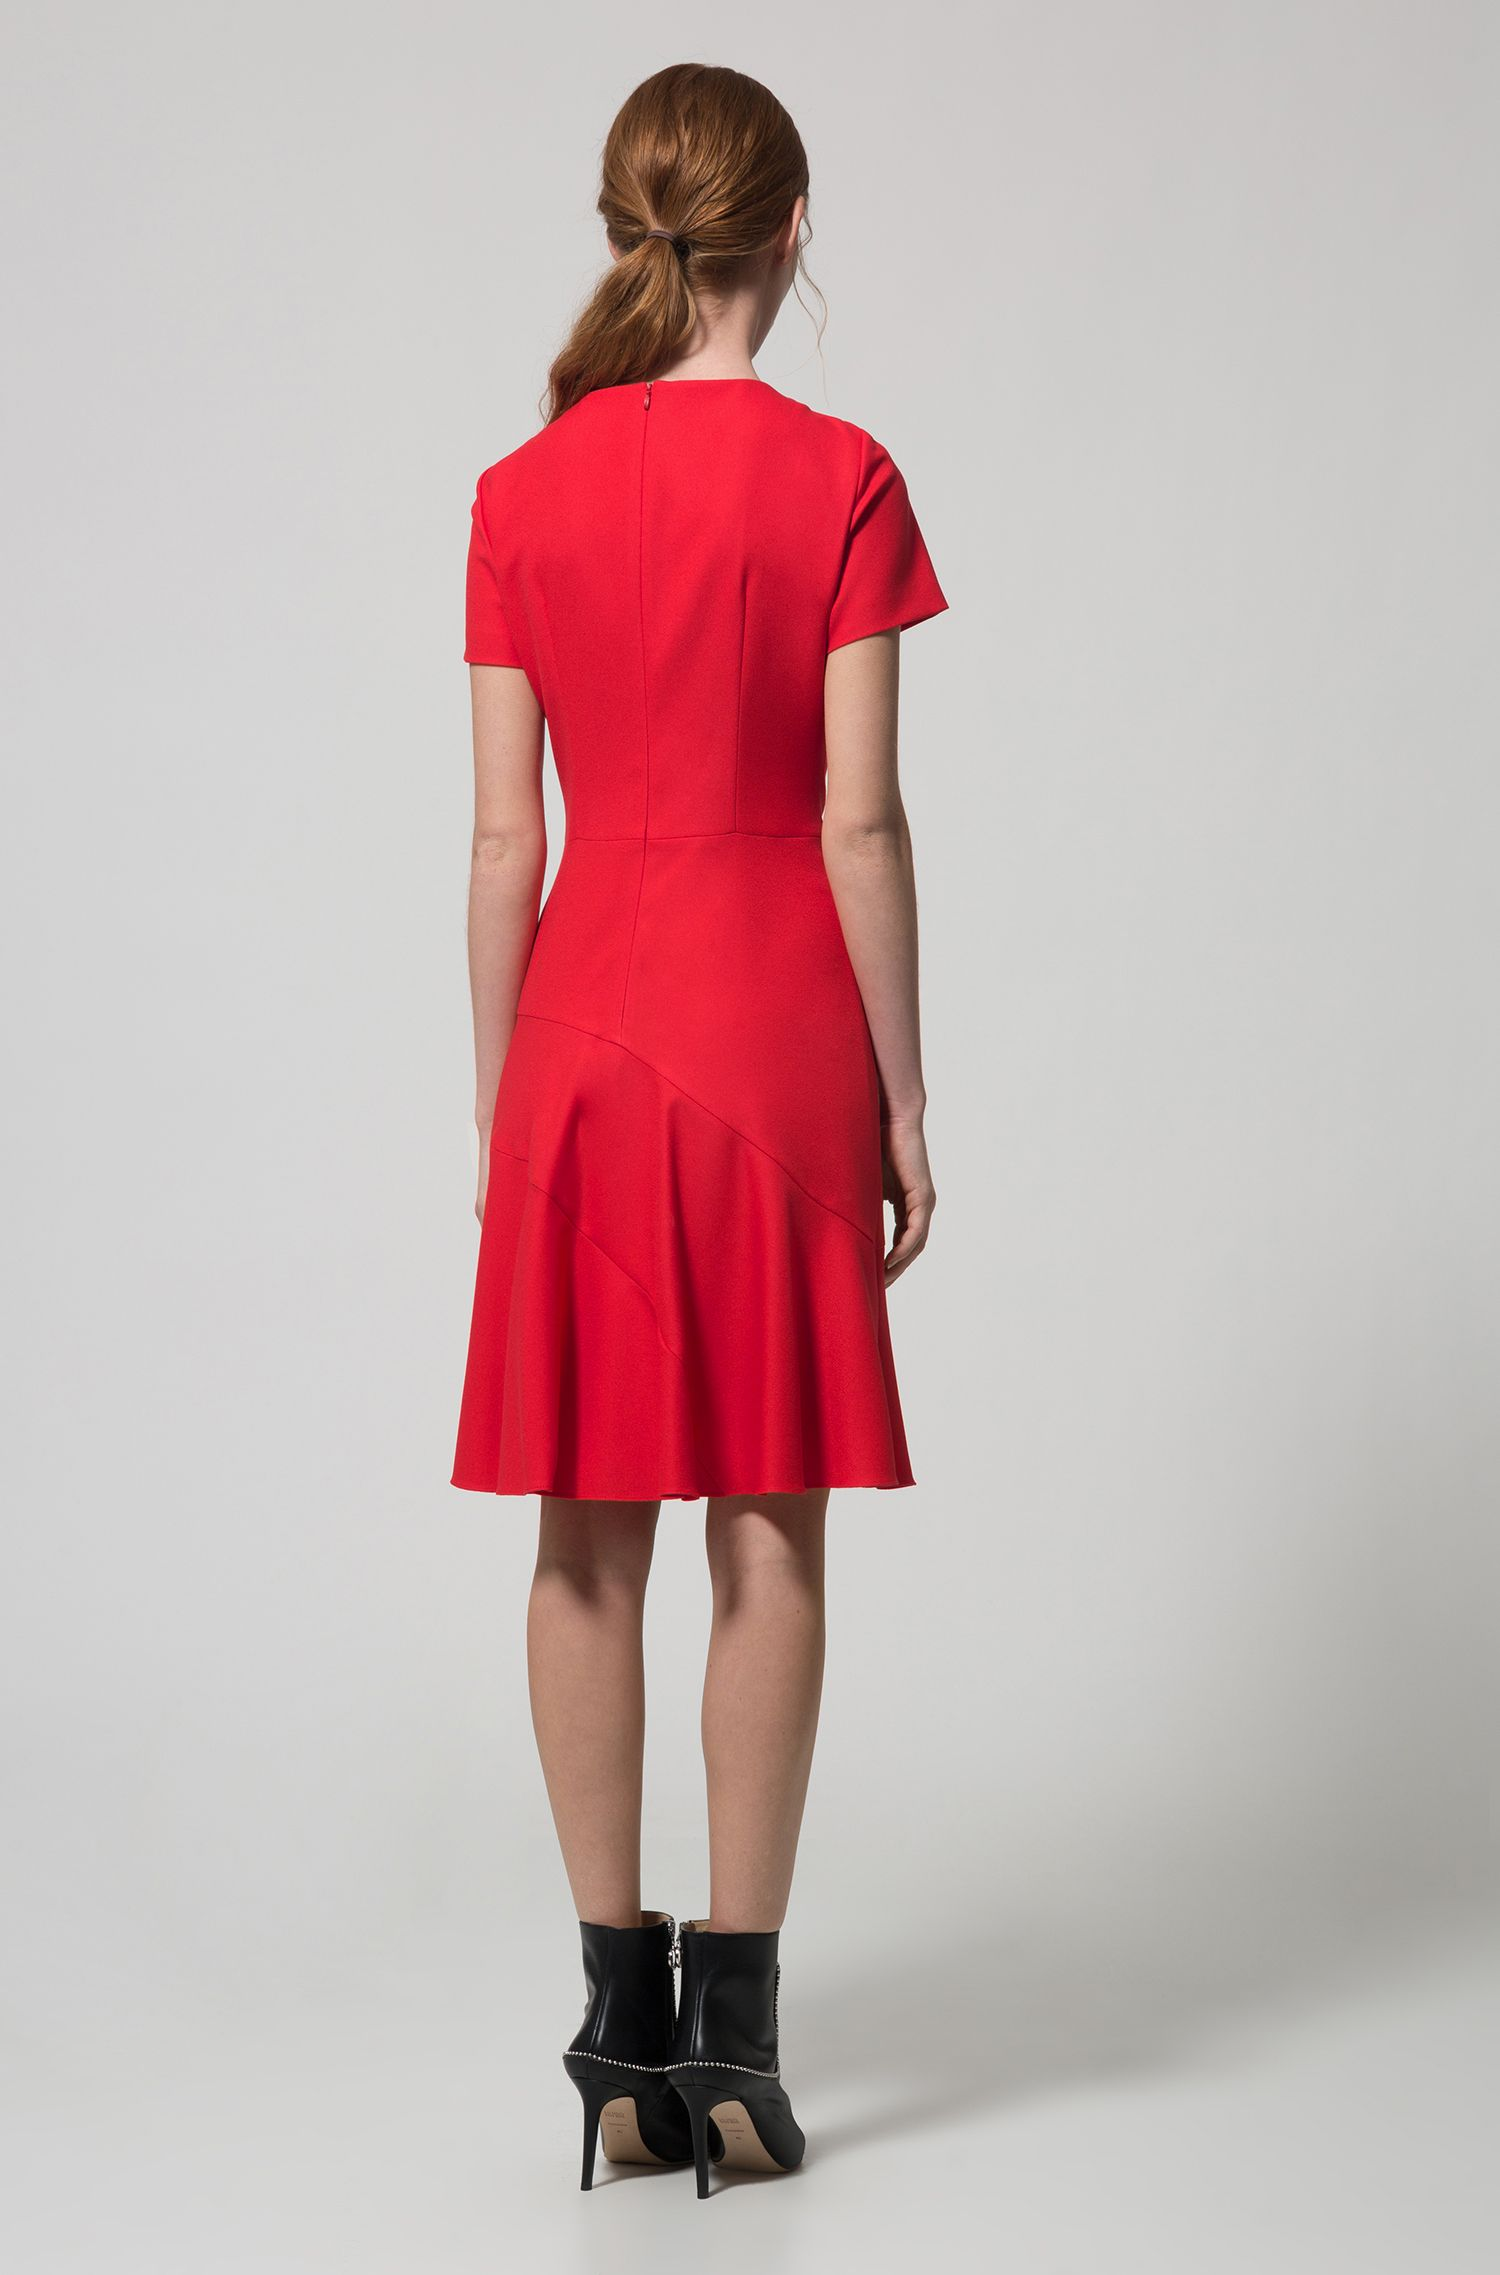 Kurzarm-Kleid aus Stretch-Krepp in A-Linie, Rot